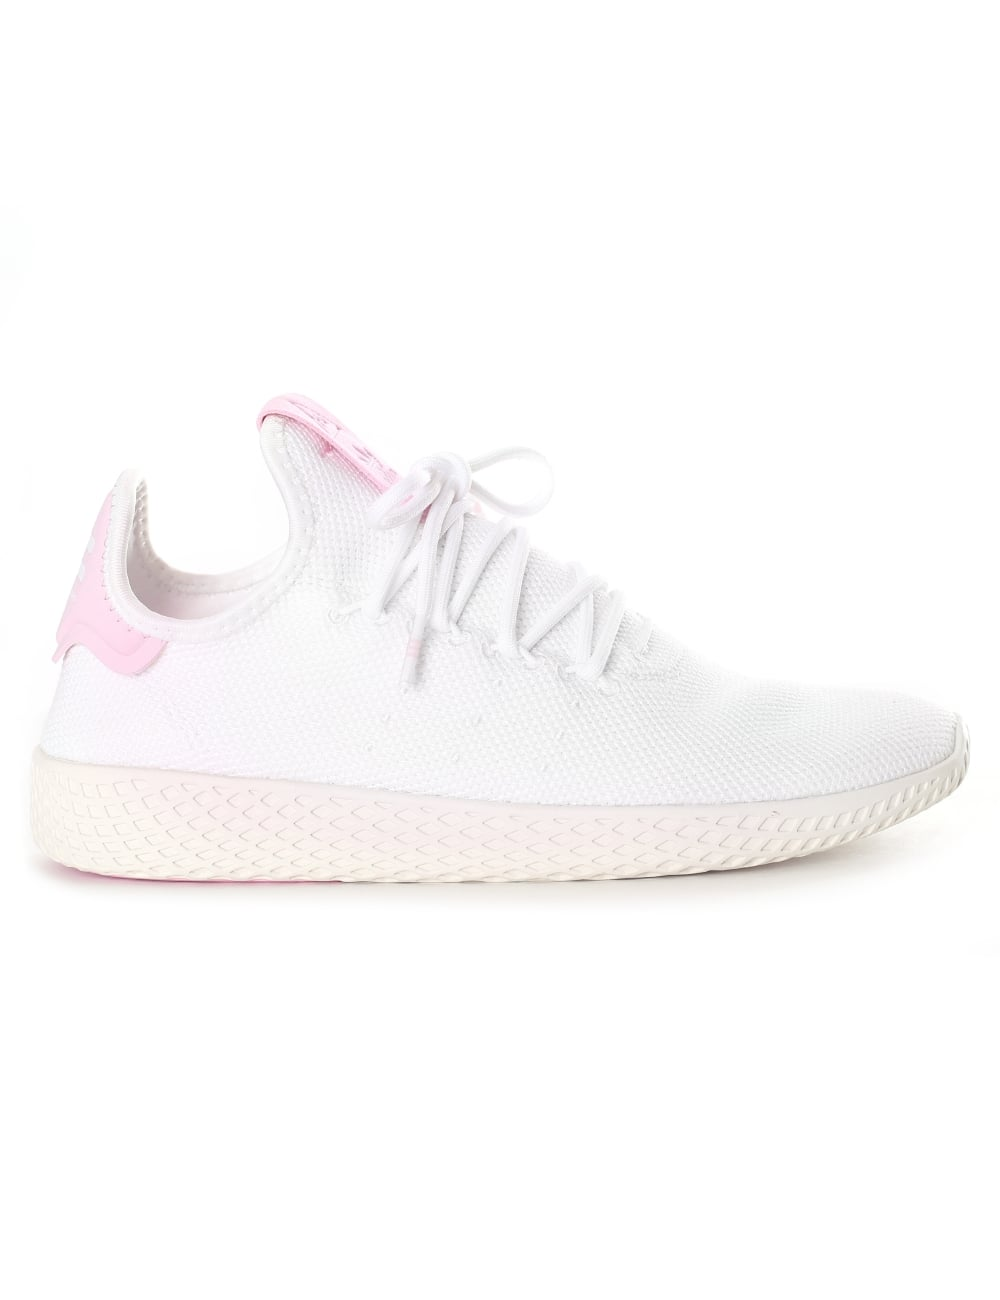 largest selection of special promotion best price Adidas Originals Pharrell Williams Tennis Hu sneaker